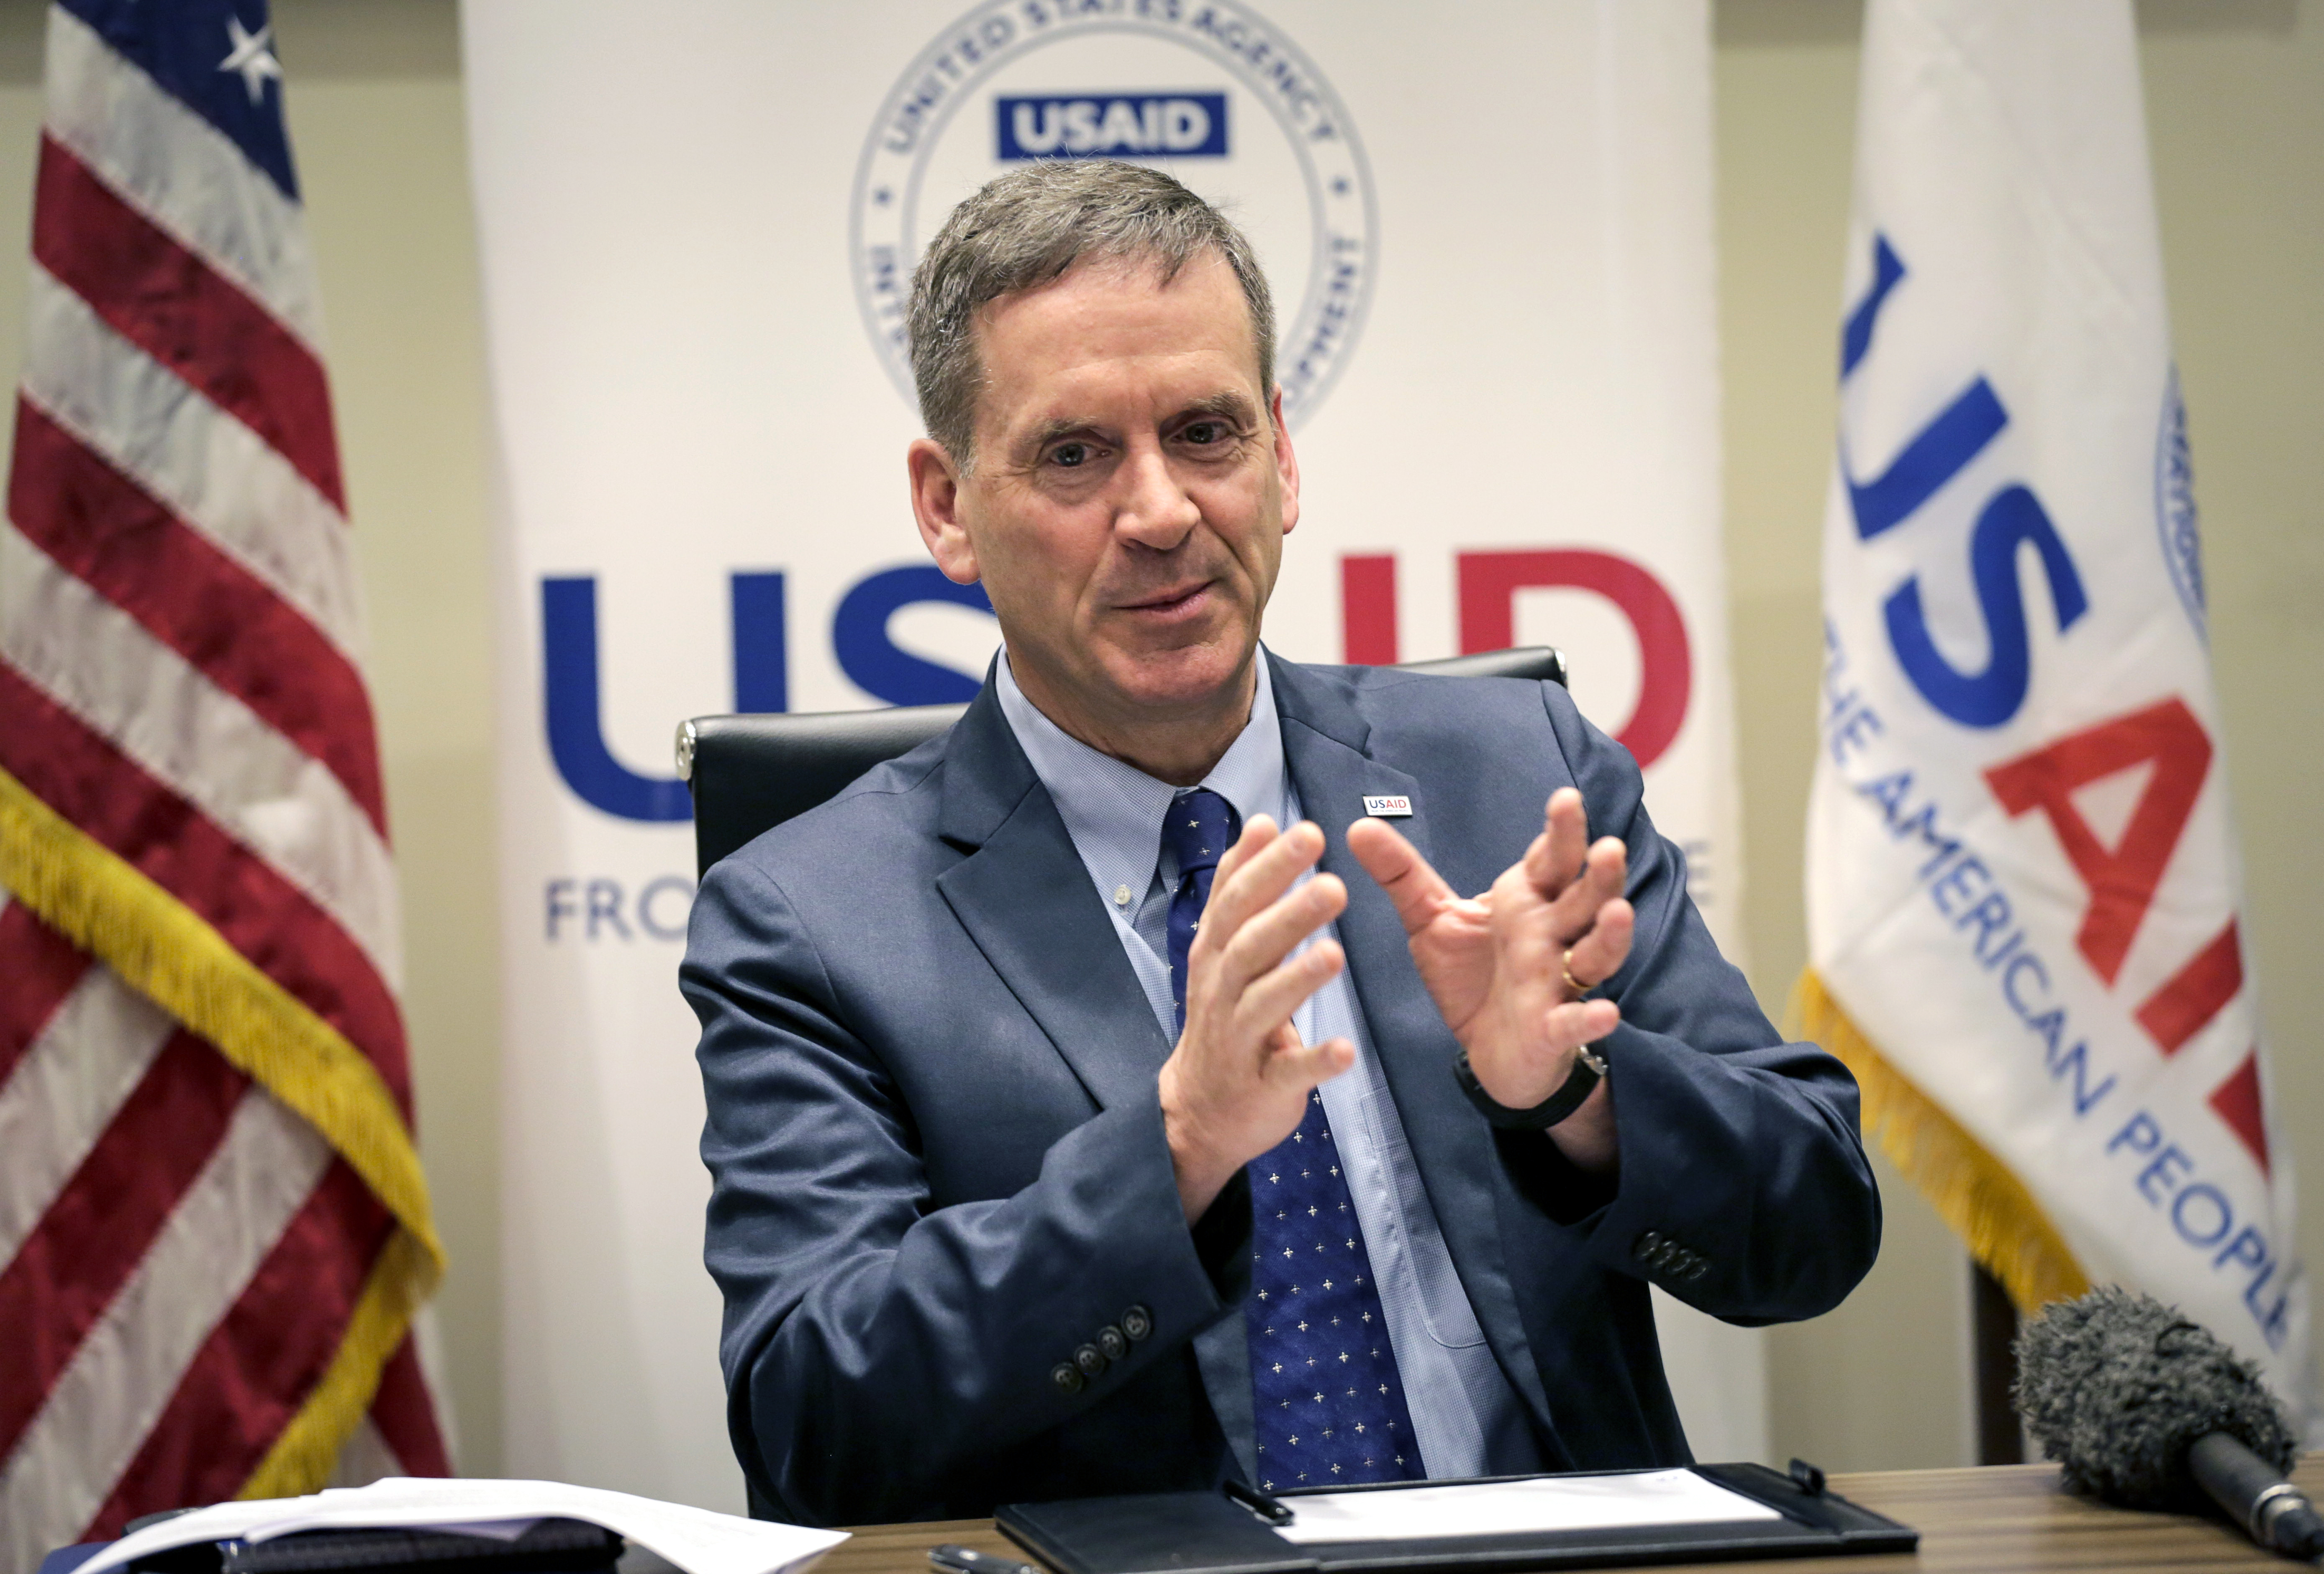 United States Agency for International Development (USAID) Administrator Mark Green has announced that he is resigning to return to the private sector.